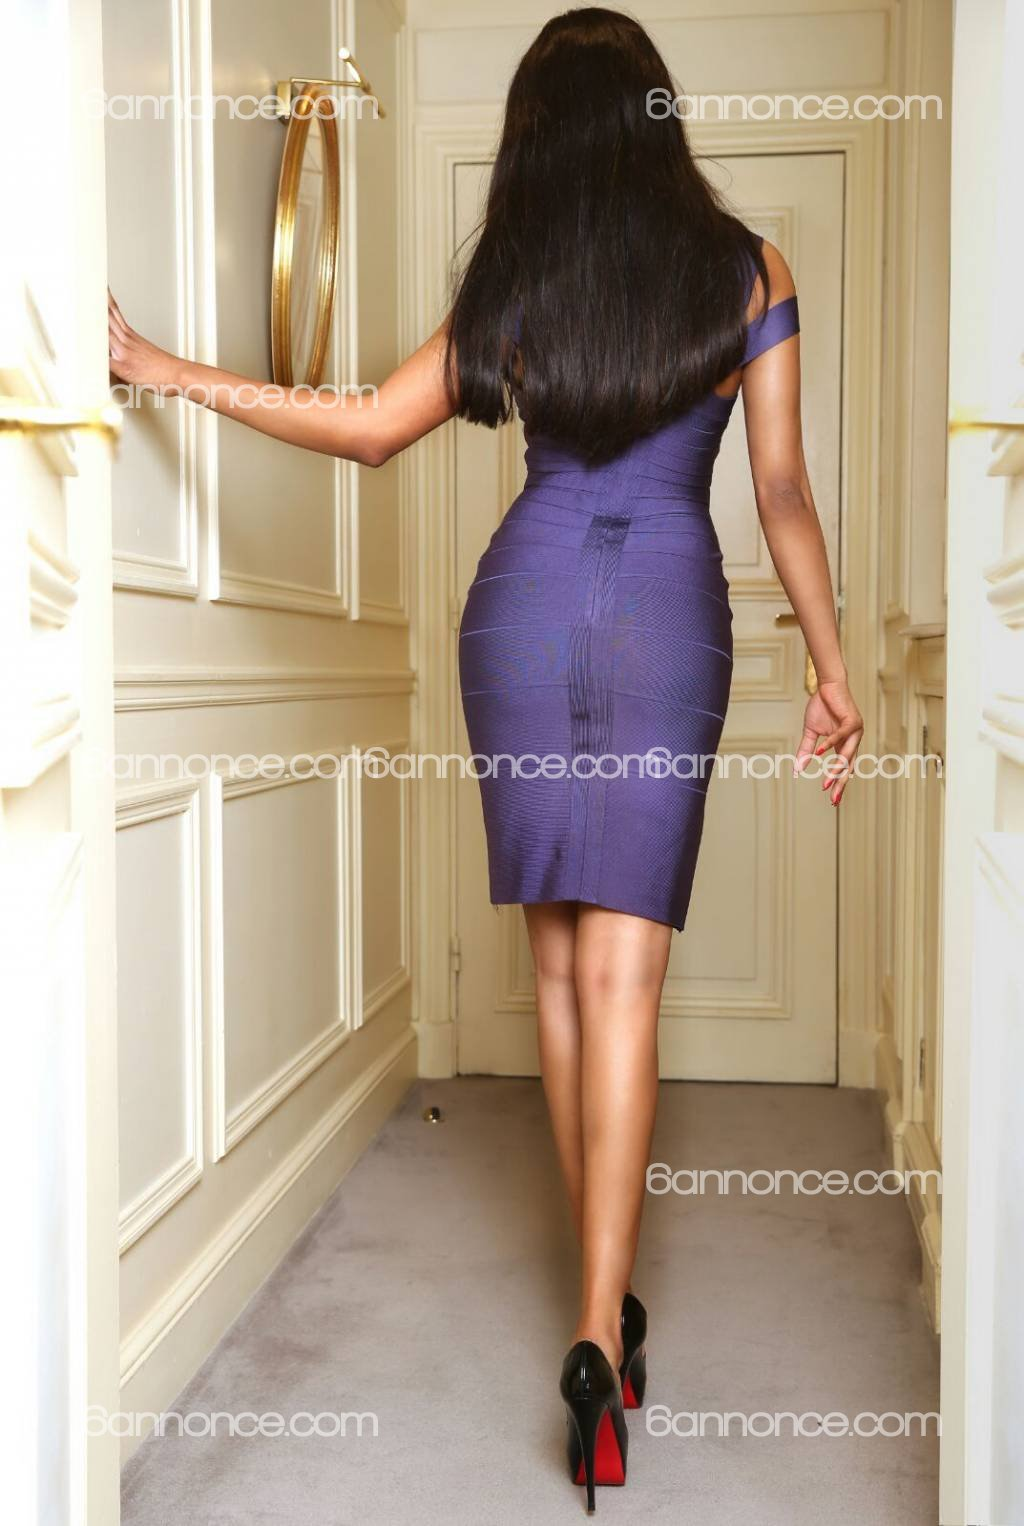 backshots paris ebony escort